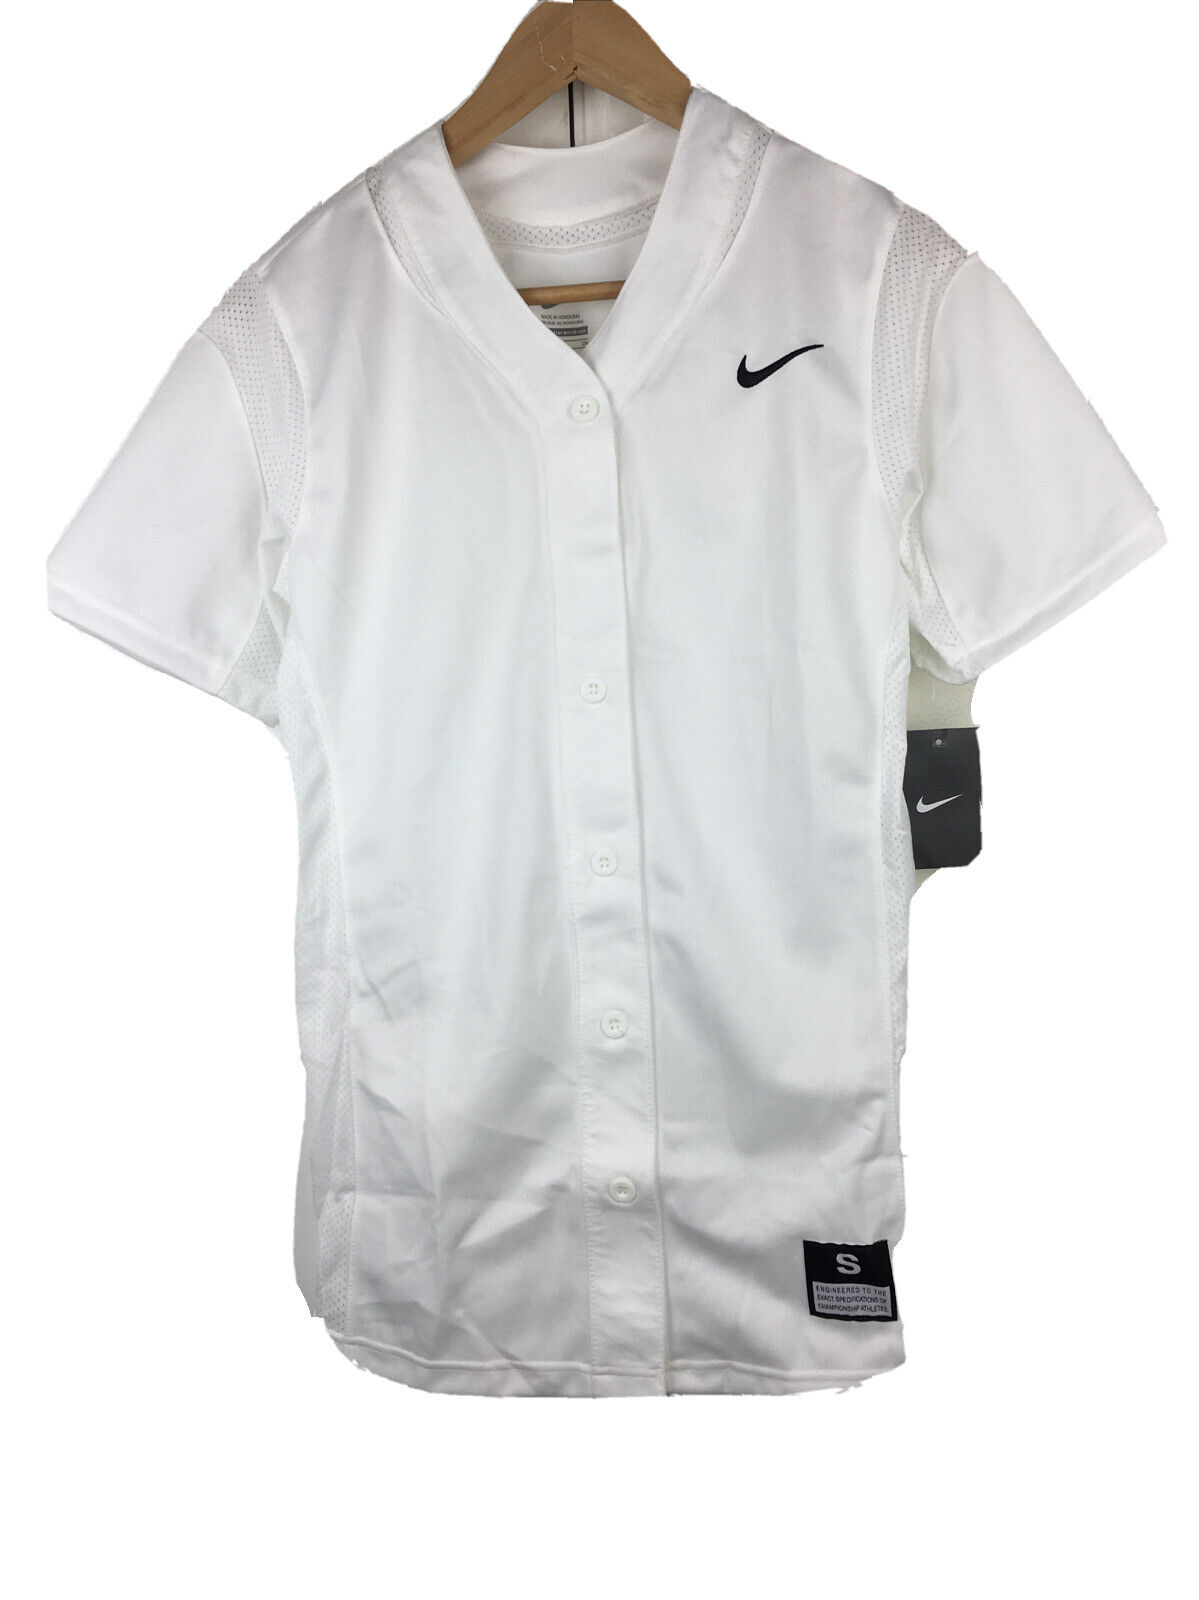 NWT Nike 630600 Womens Size S White Short Sleeve Button Front Softball Shirt